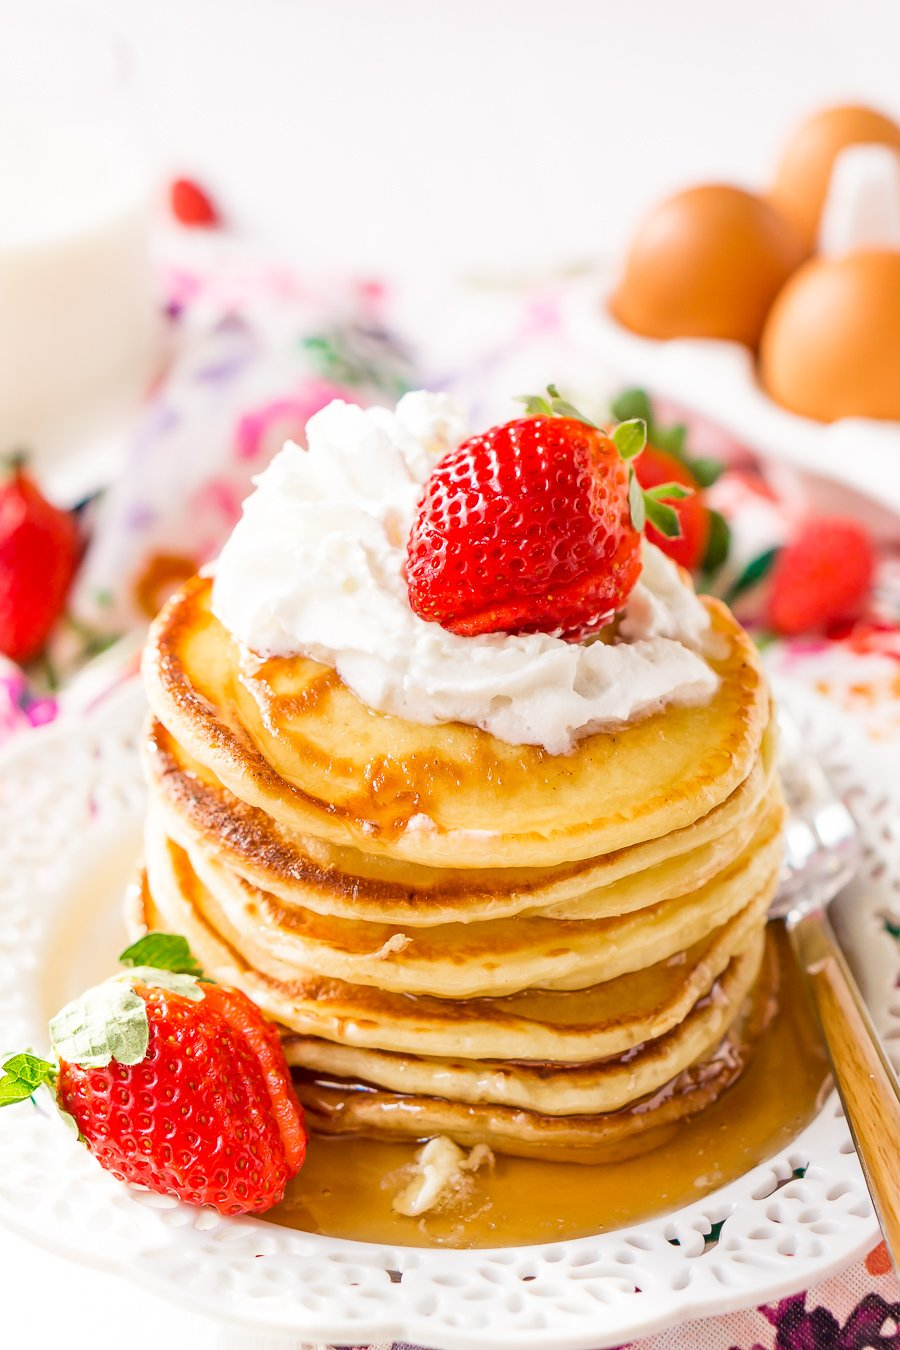 Delicious Pancake Toppings for the Best Breakfast